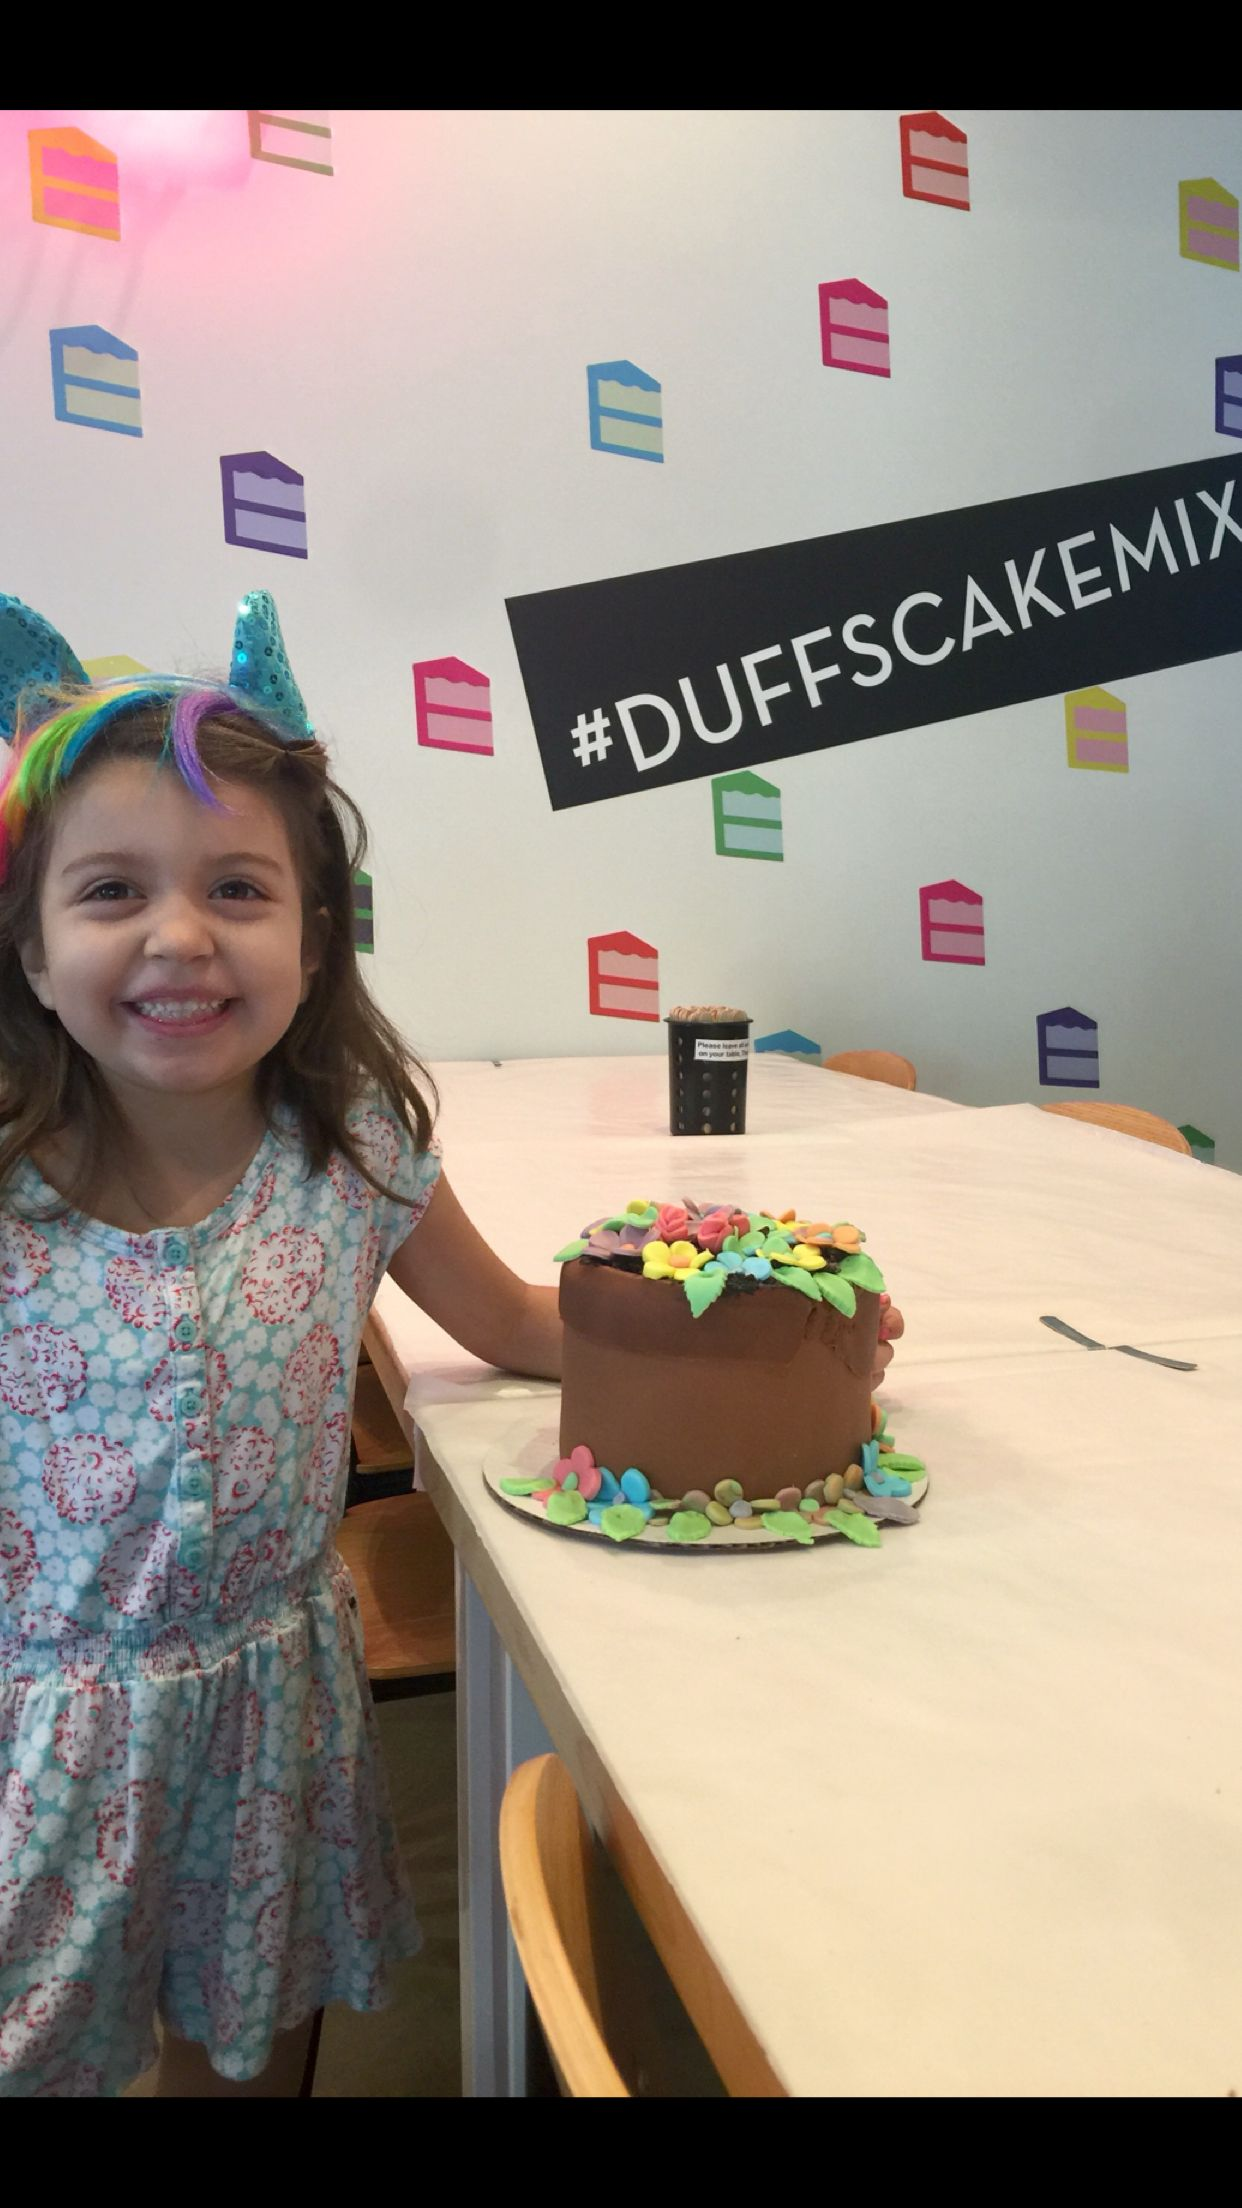 Cake decorating class at Duff's cake mix in Pasadena (With ...